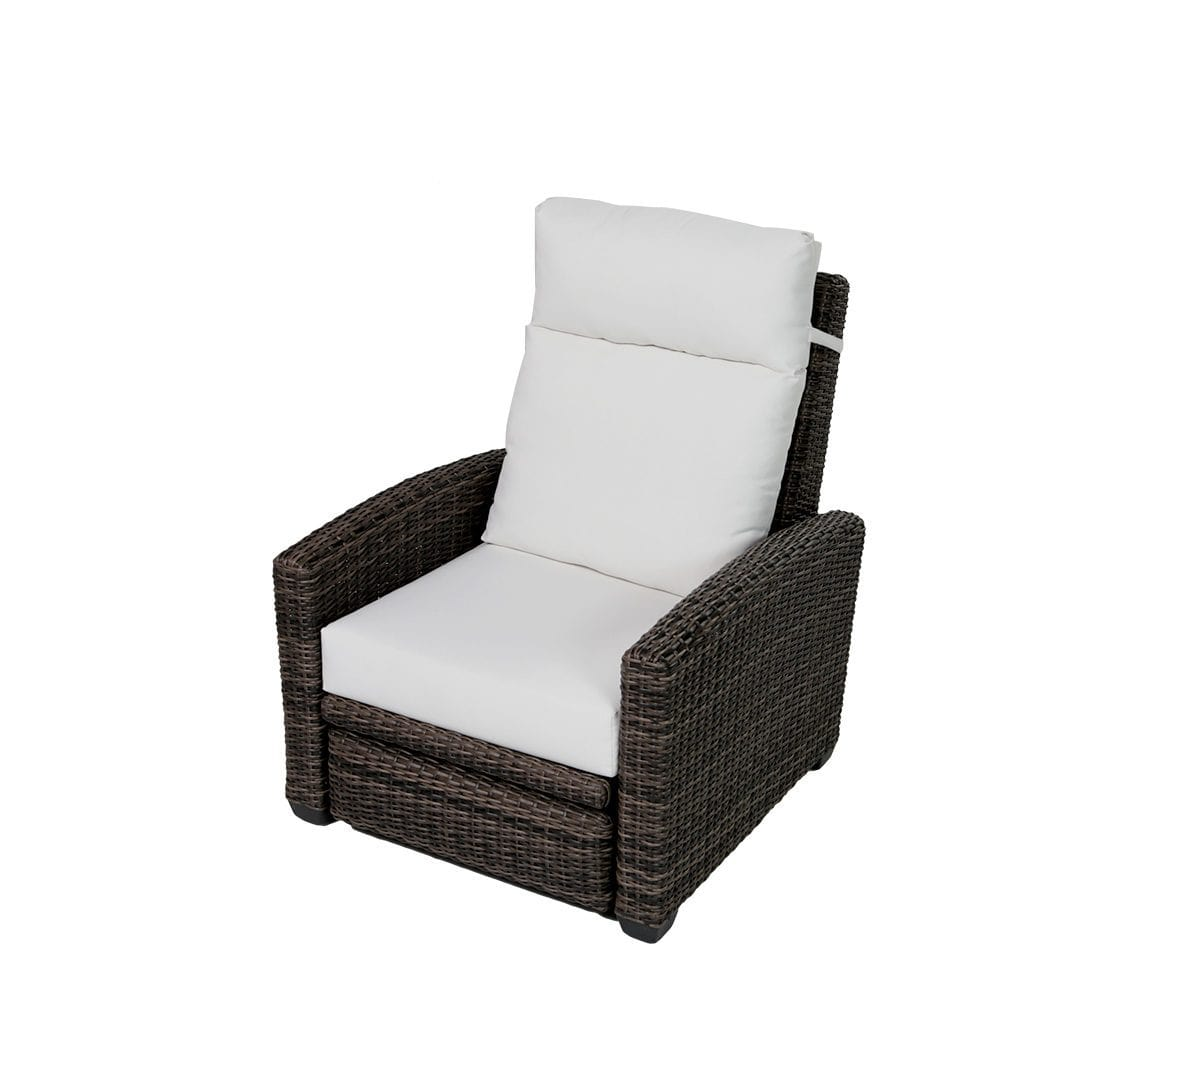 Ratana wicker Coral Gables Recliner